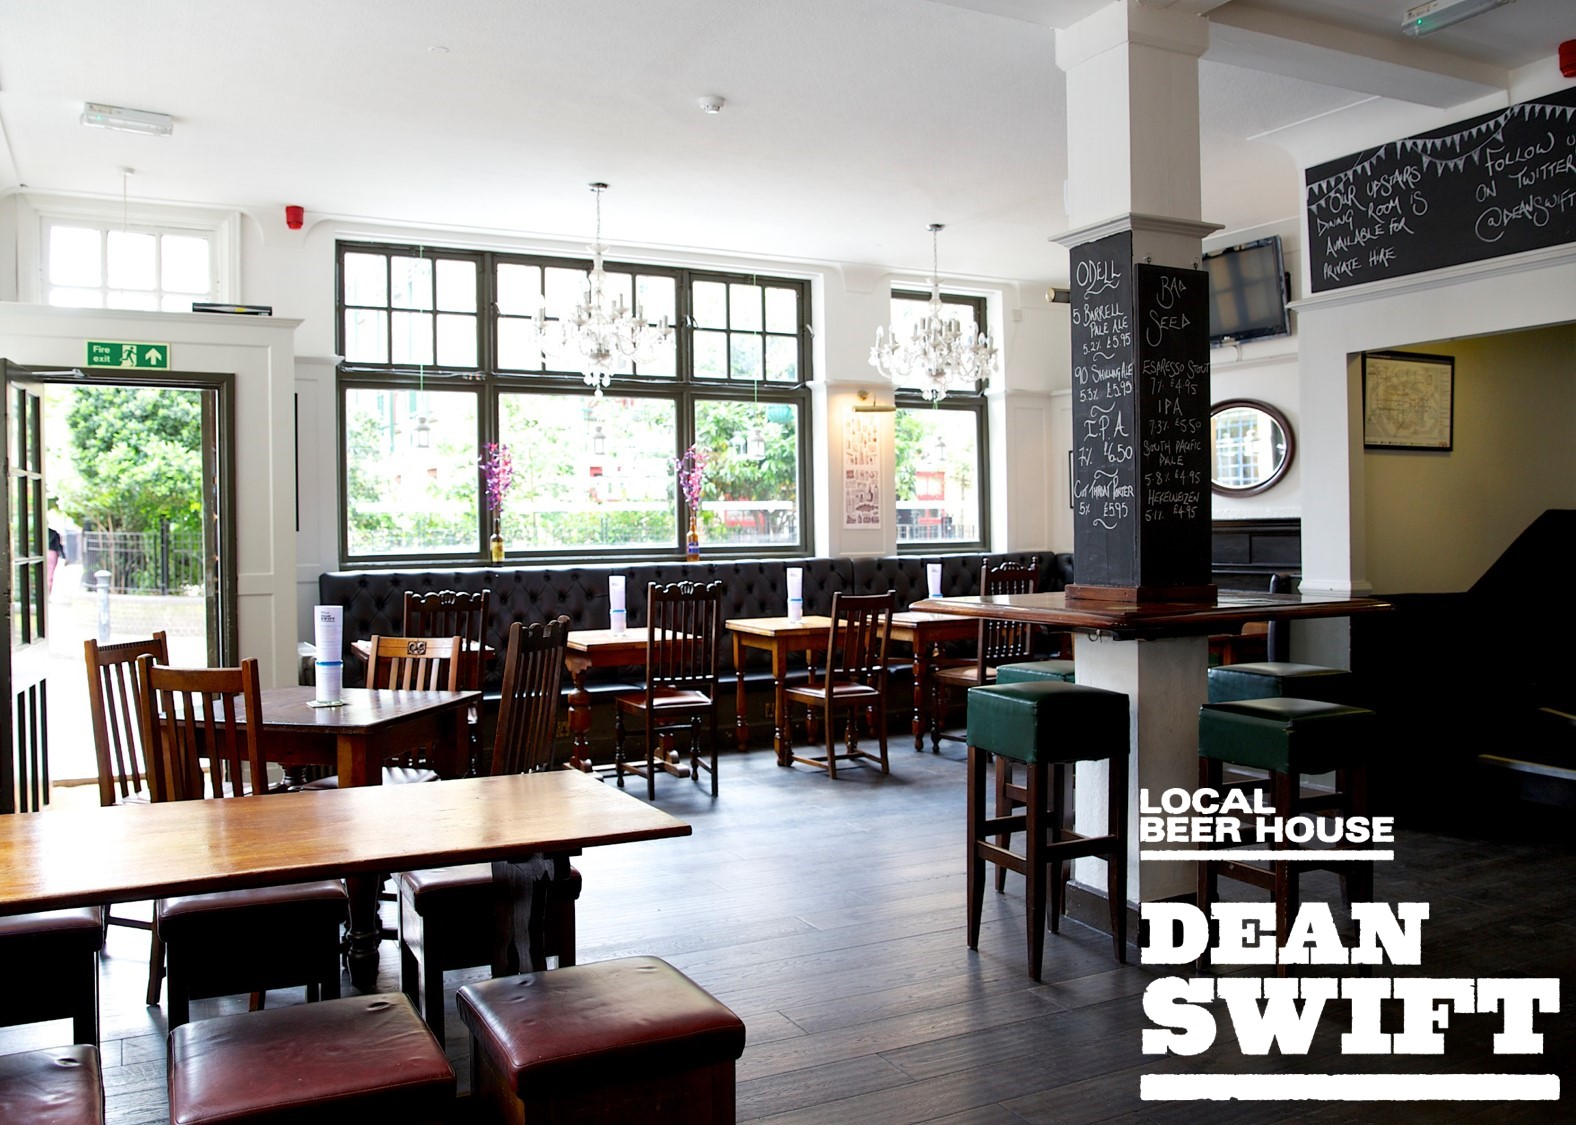 Stamp dean swift is your local beer house in butlers wharf se1 serving some of the finest craft beer and pub food in london malvernweather Images